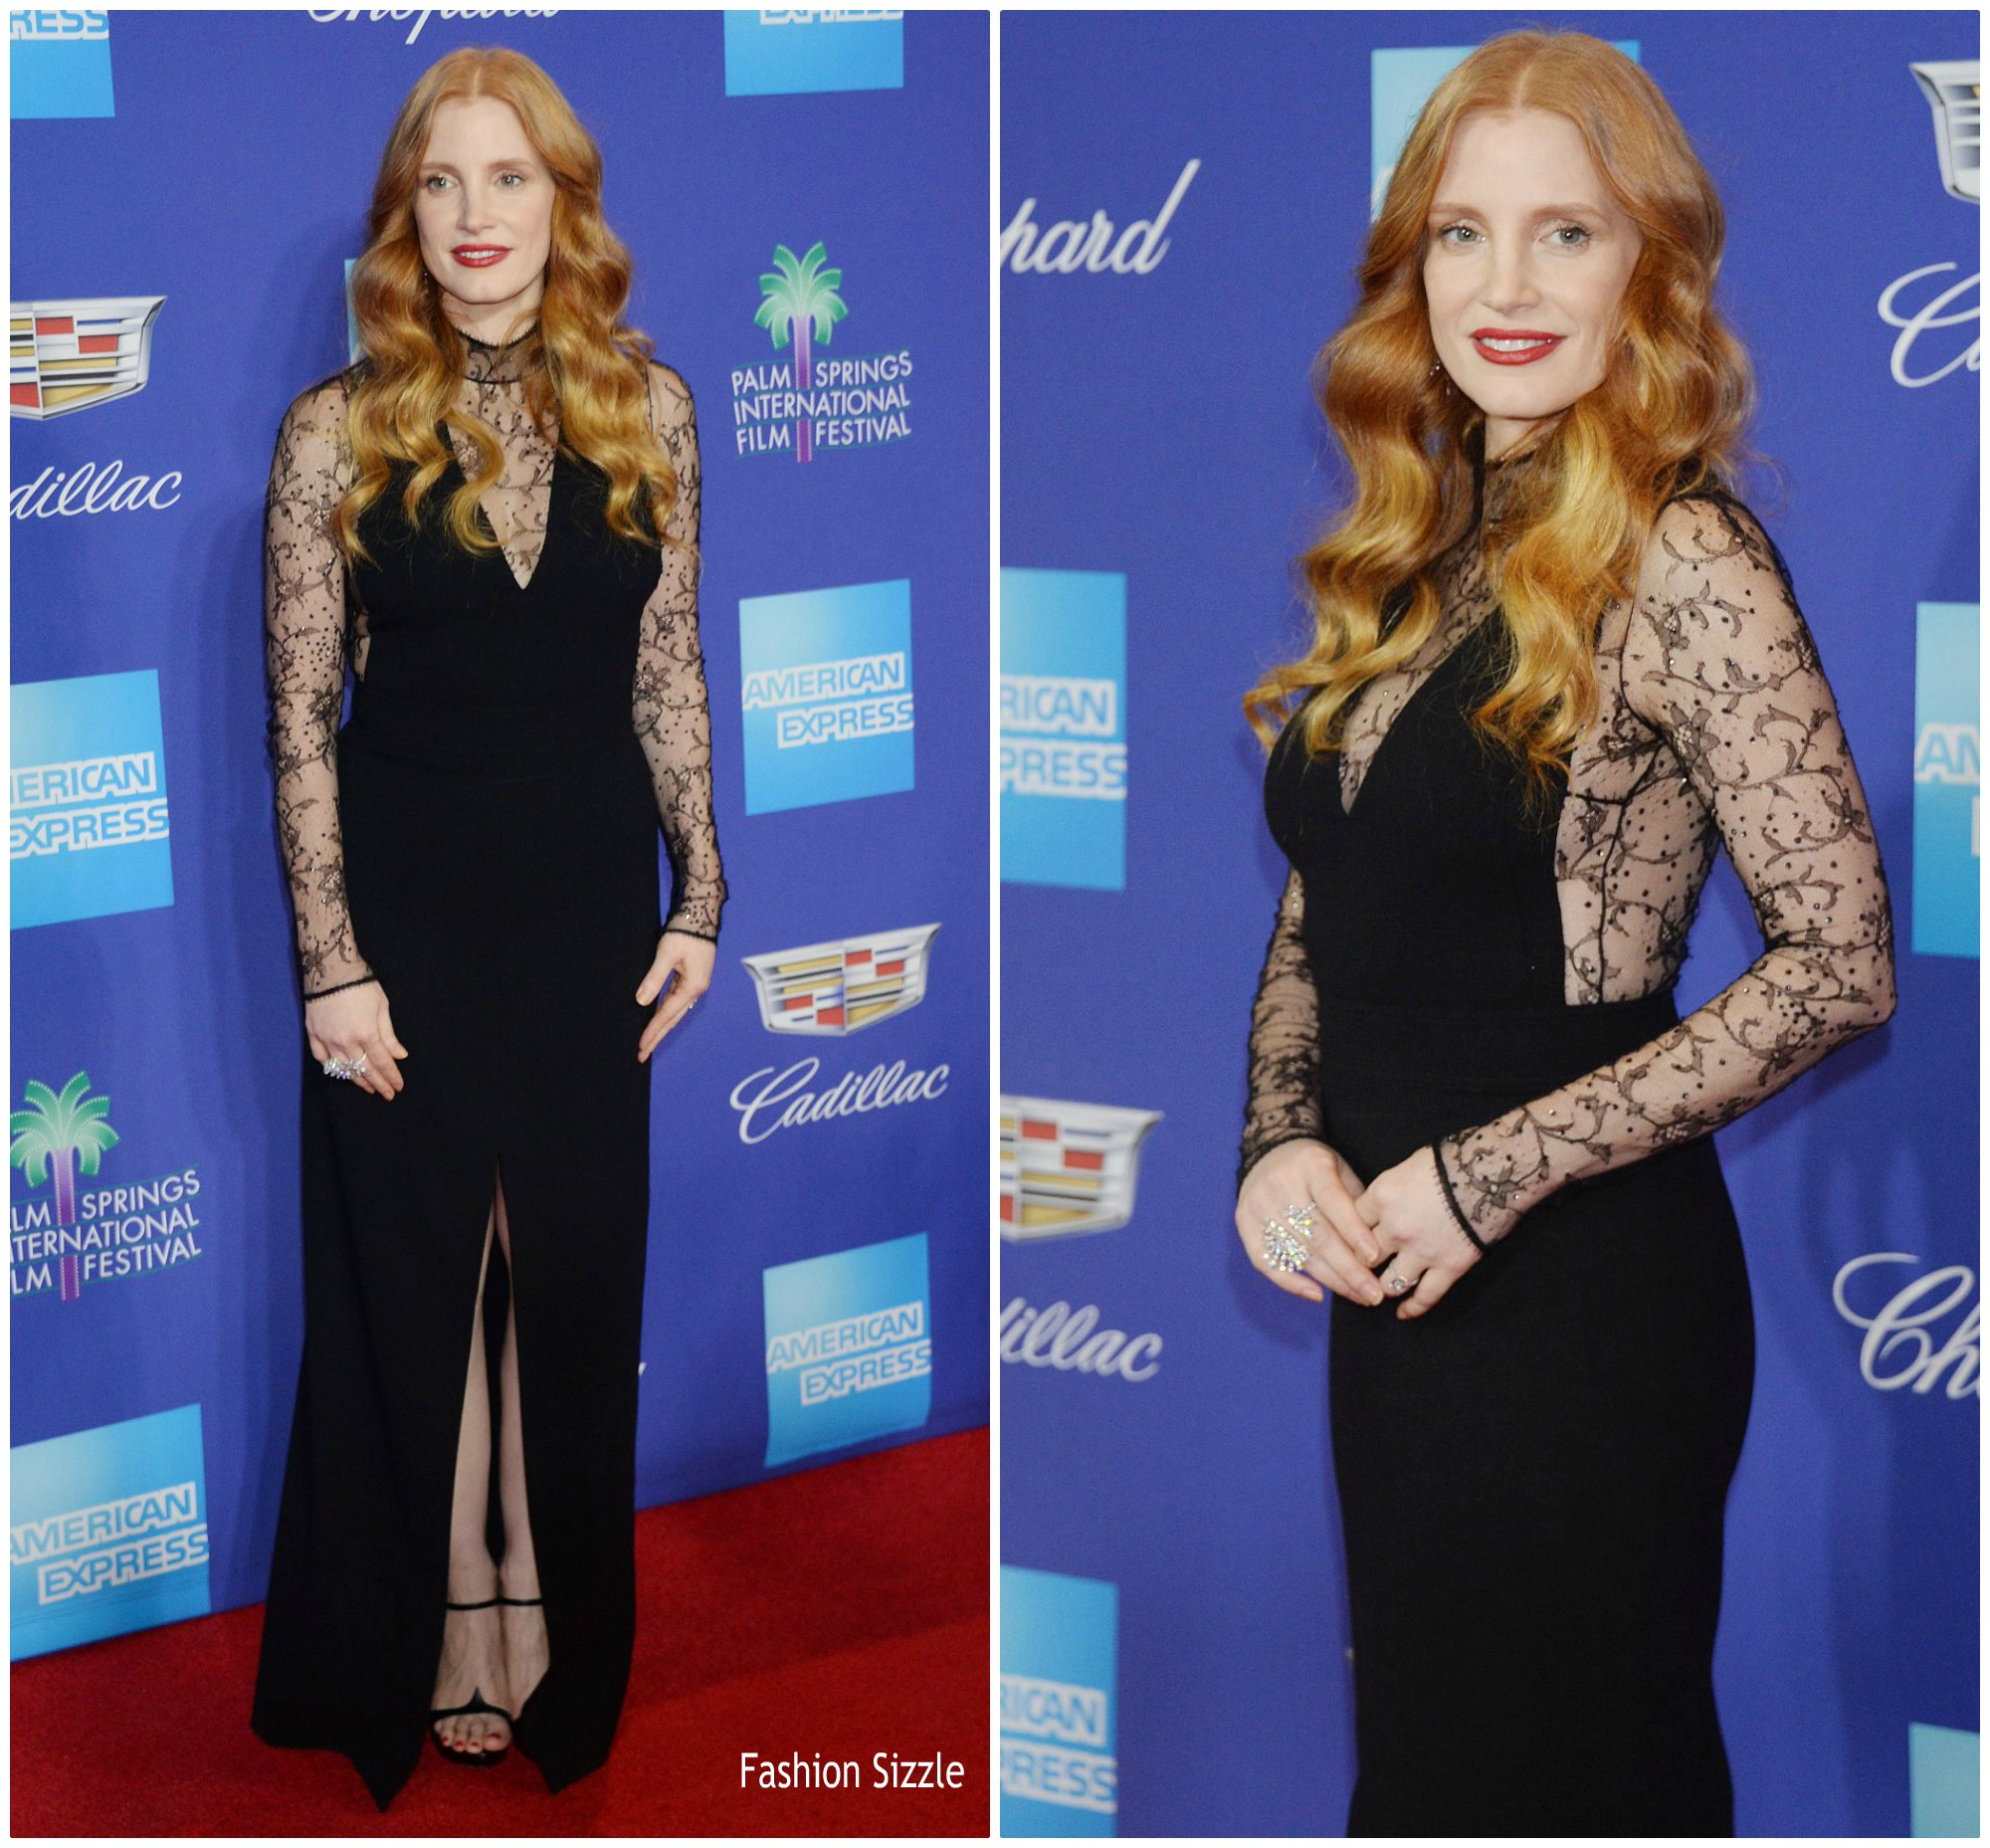 jessica-chastain-in-givenchy-29th-annual-palm-springs-international-film-festival